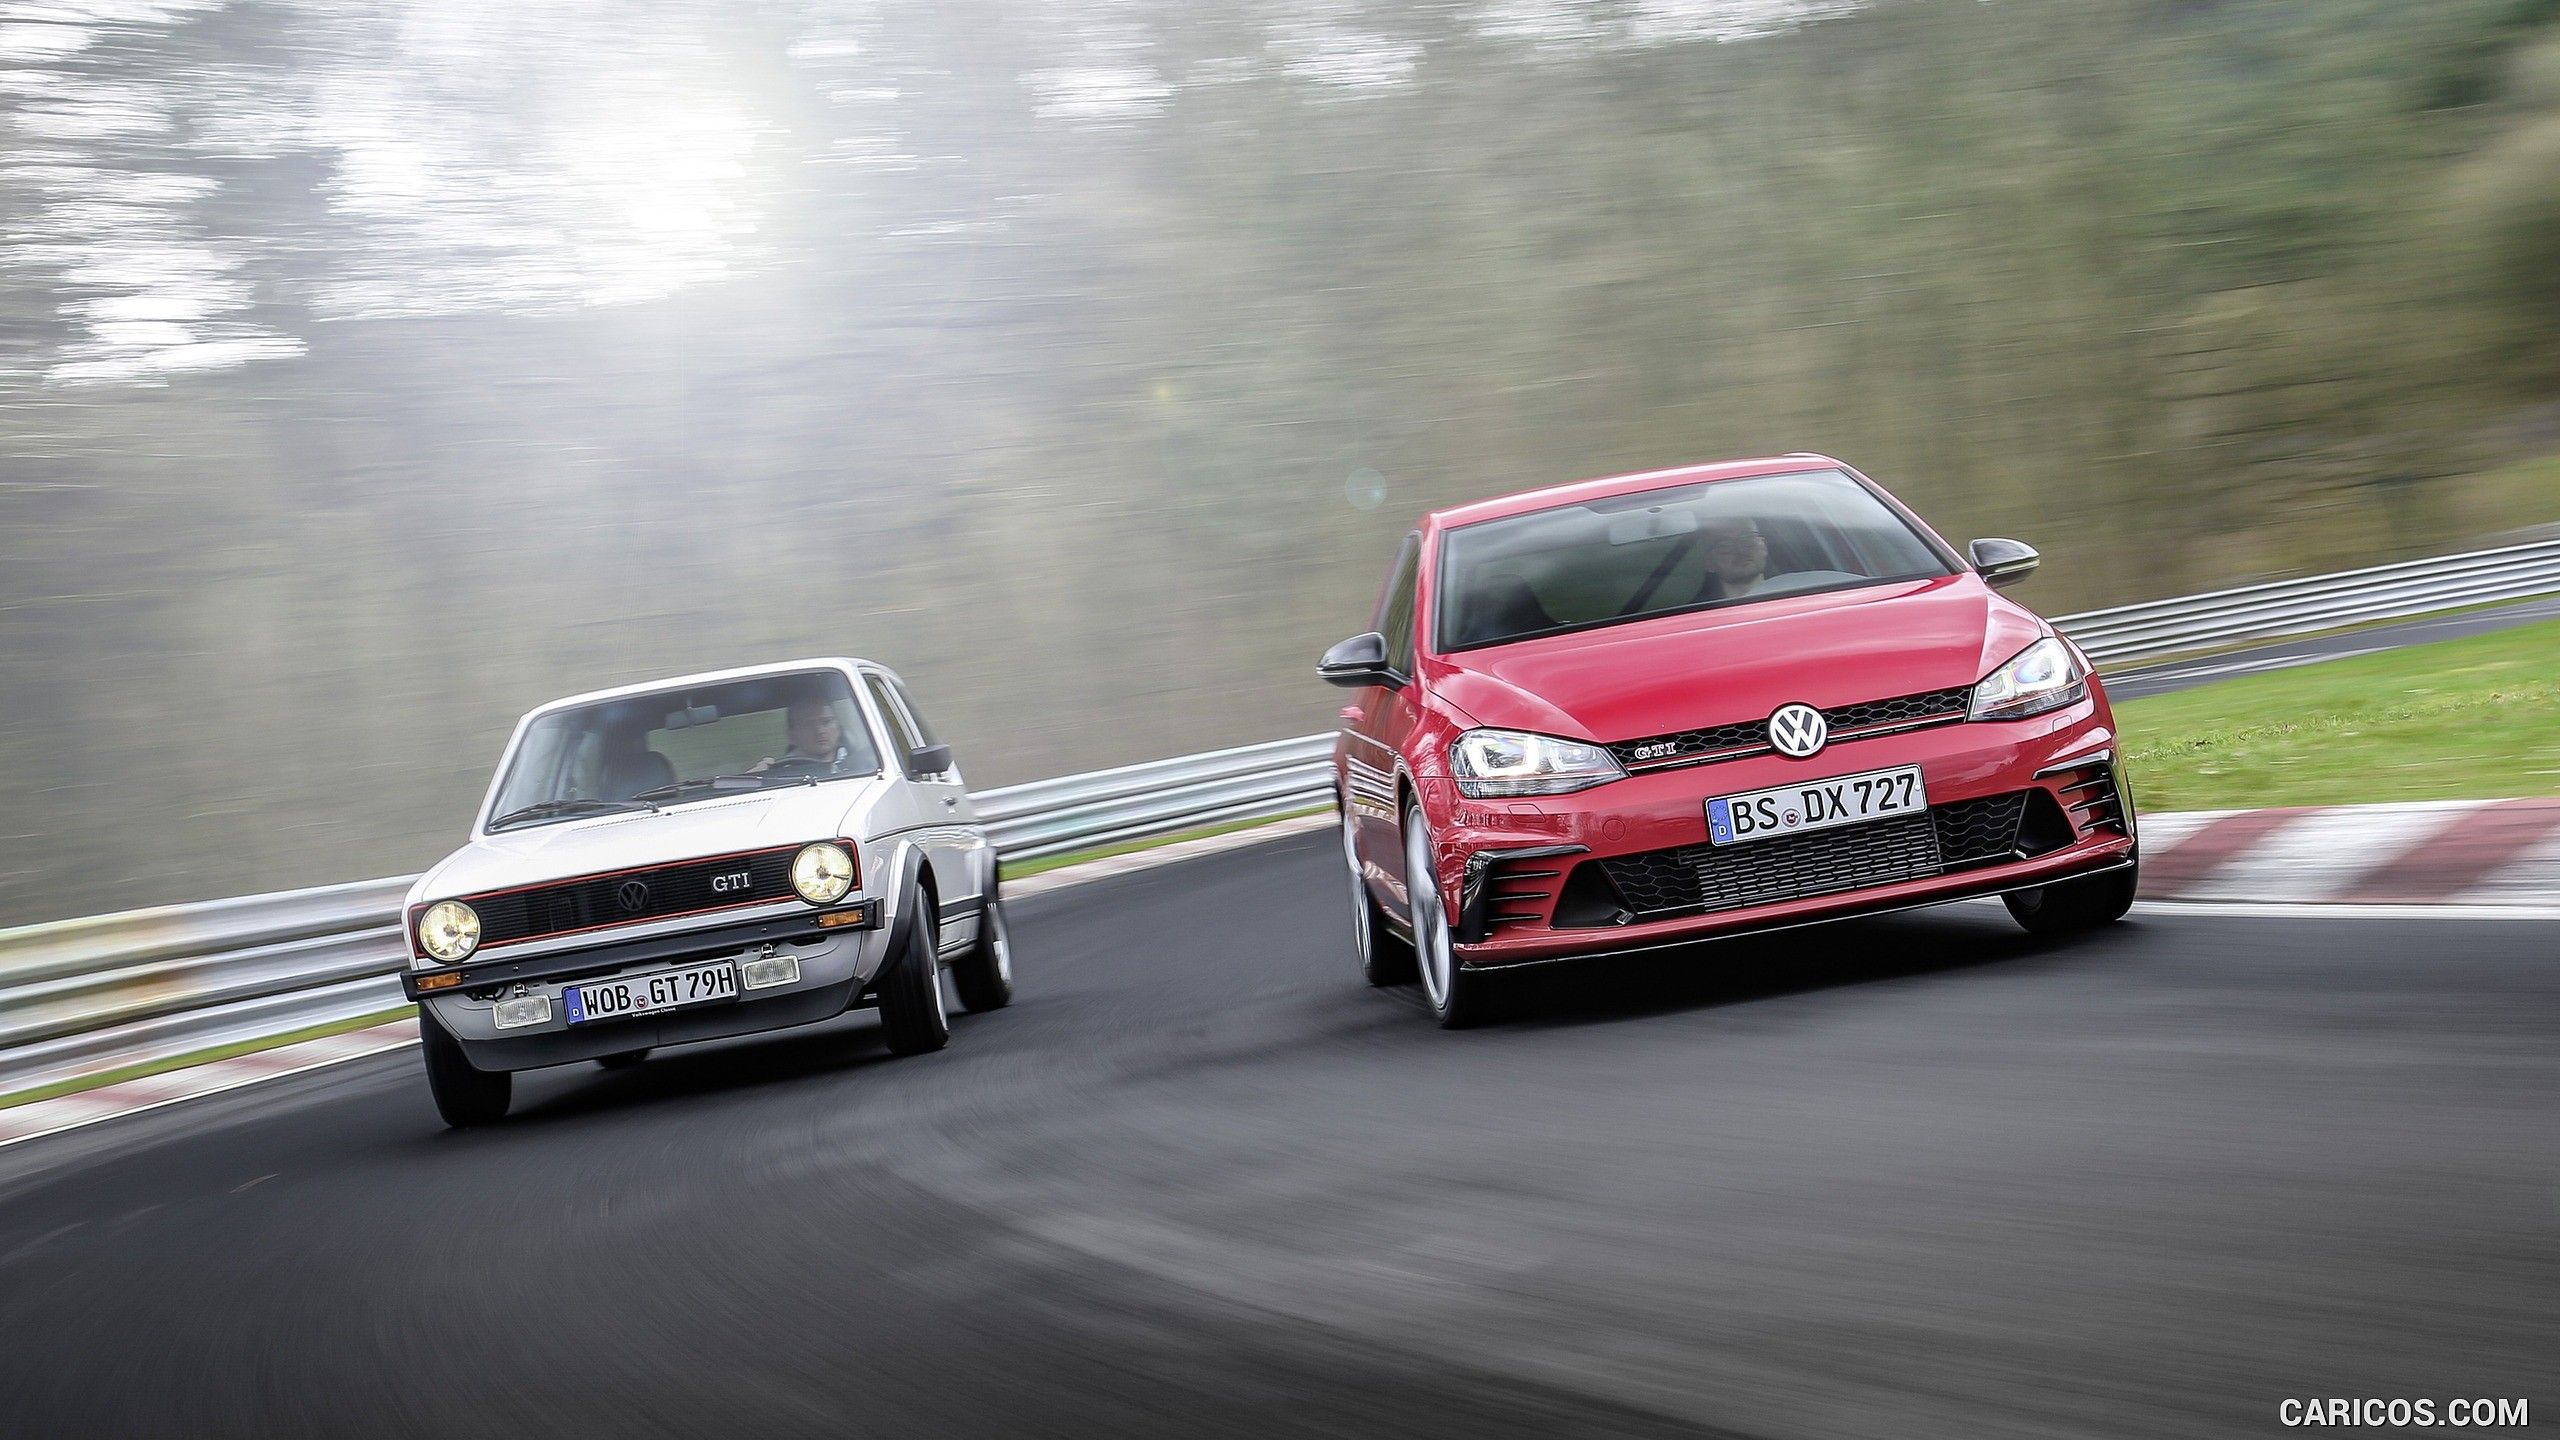 2560x1440 2017 Volkswagen Golf GTI Clubsport S Wallpaper